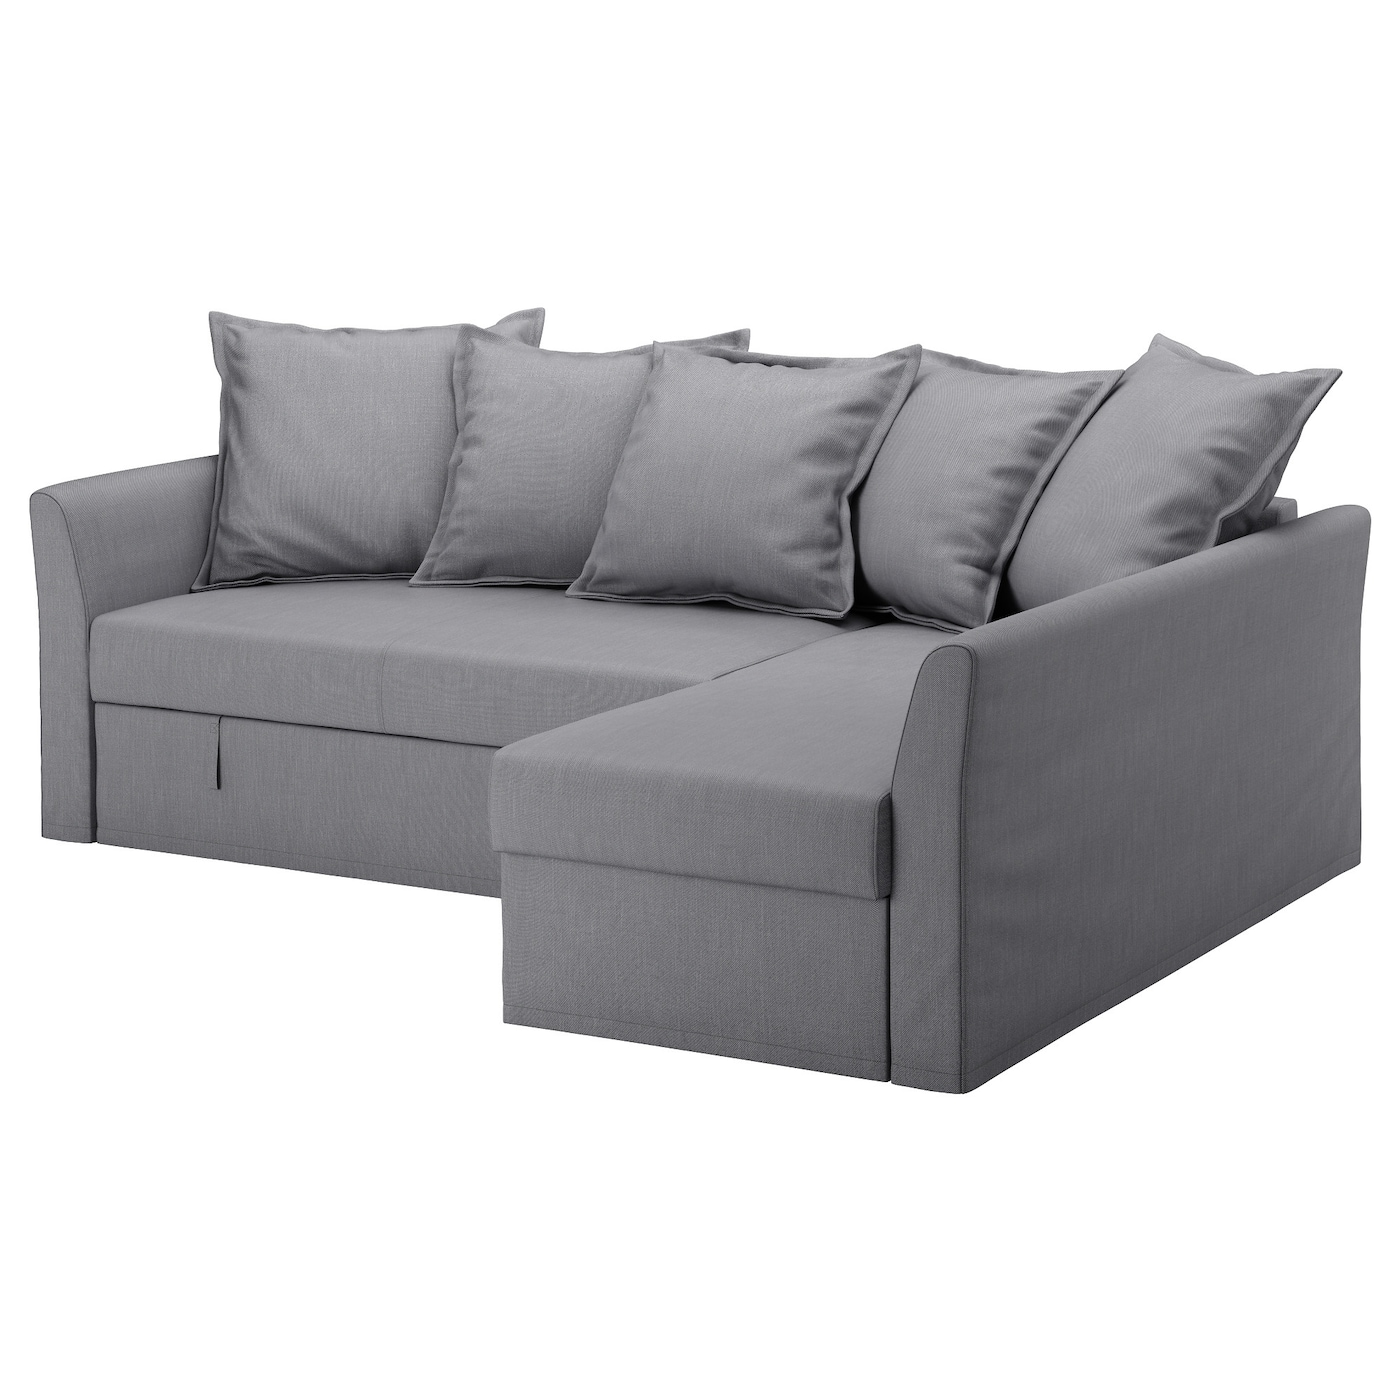 HOLMSUND Corner sofa bed Nordvalla medium grey IKEA : holmsund corner sofa bed nordvalla medium grey0405951pe577764s5 from www.ikea.com size 2000 x 2000 jpeg 572kB